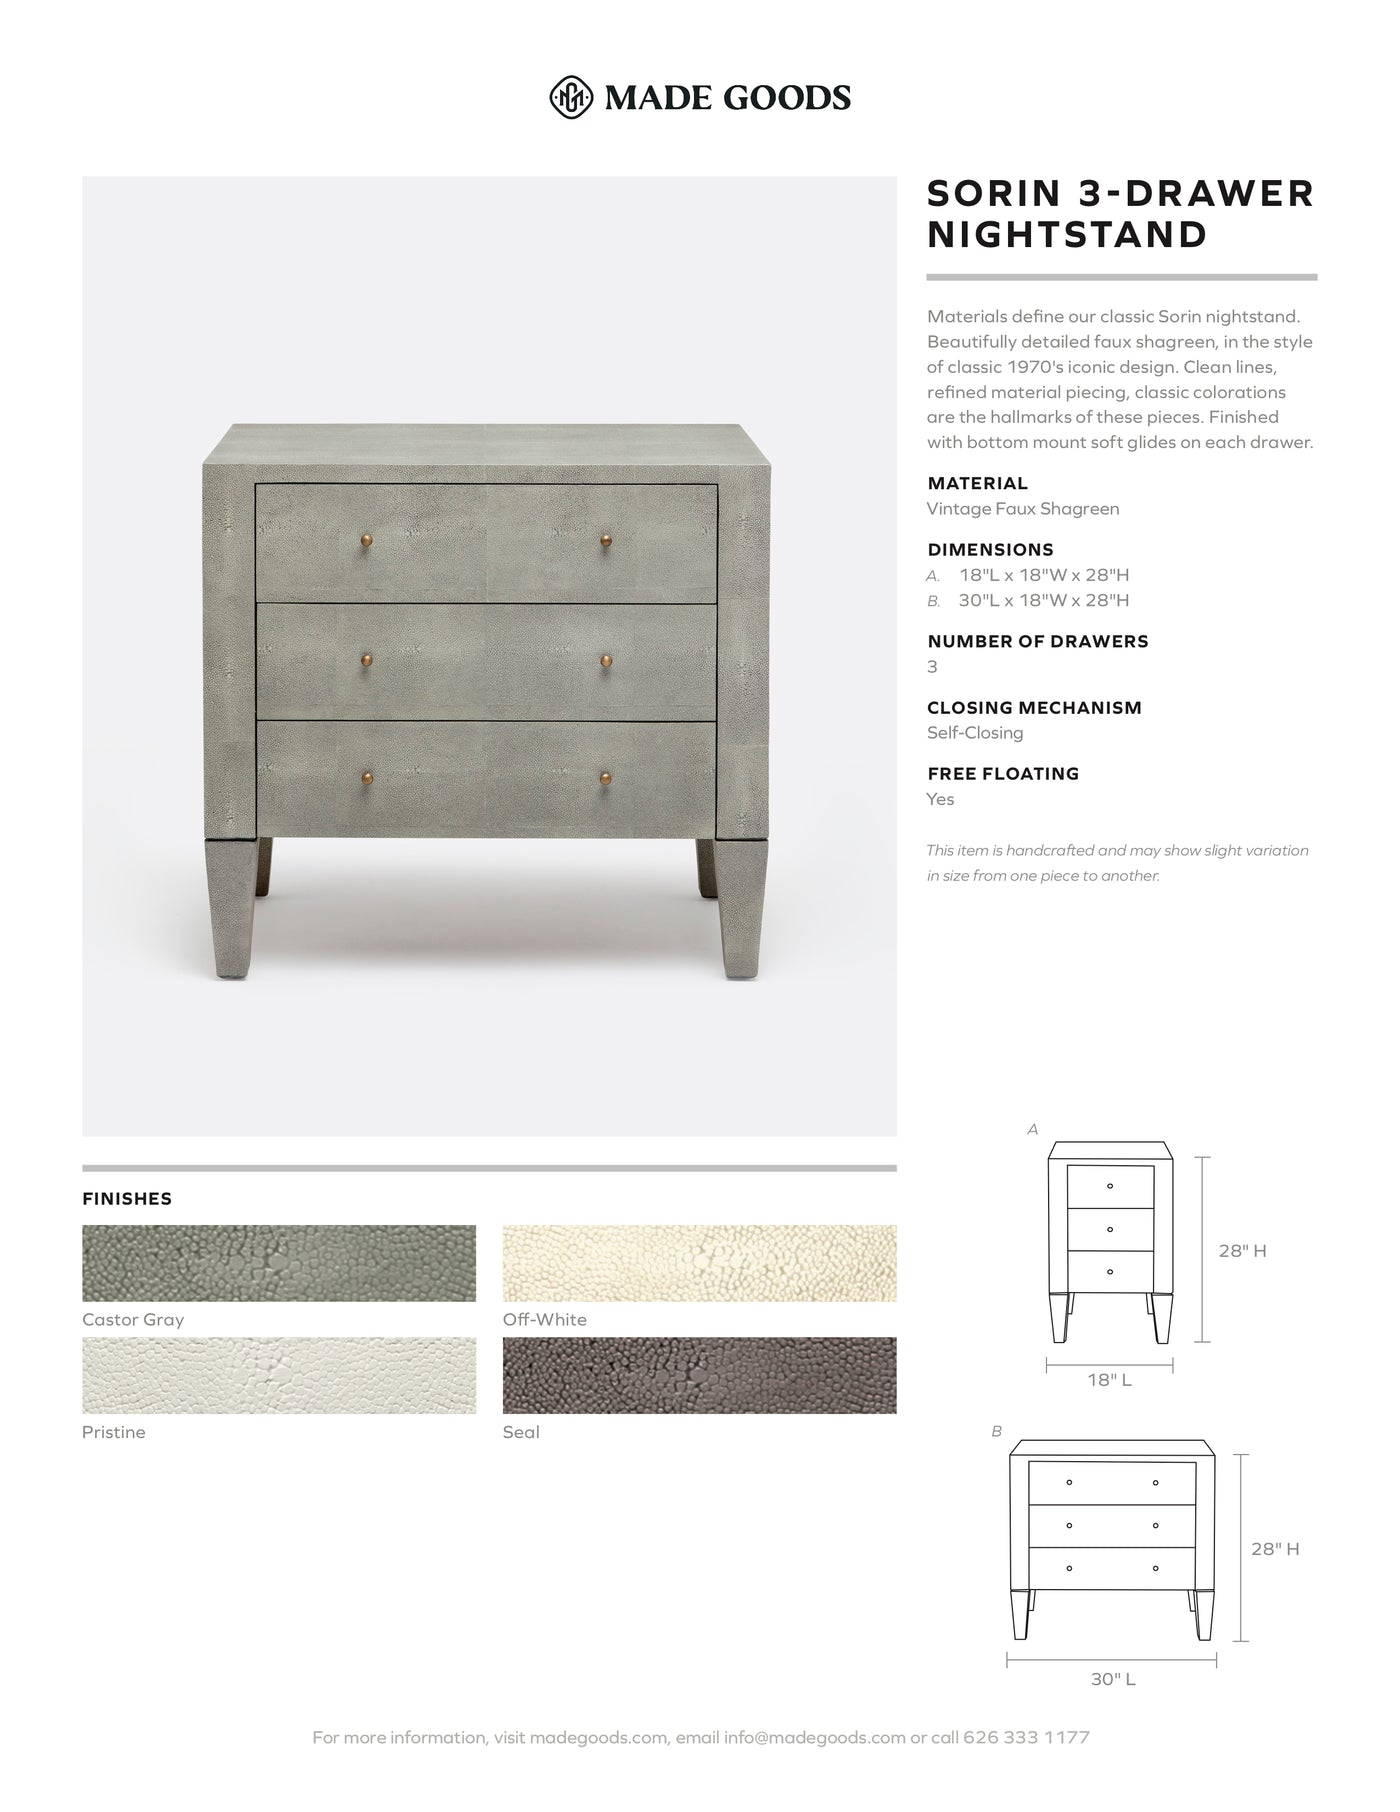 made goods sorin 3 drawer double nightstand tearsheet